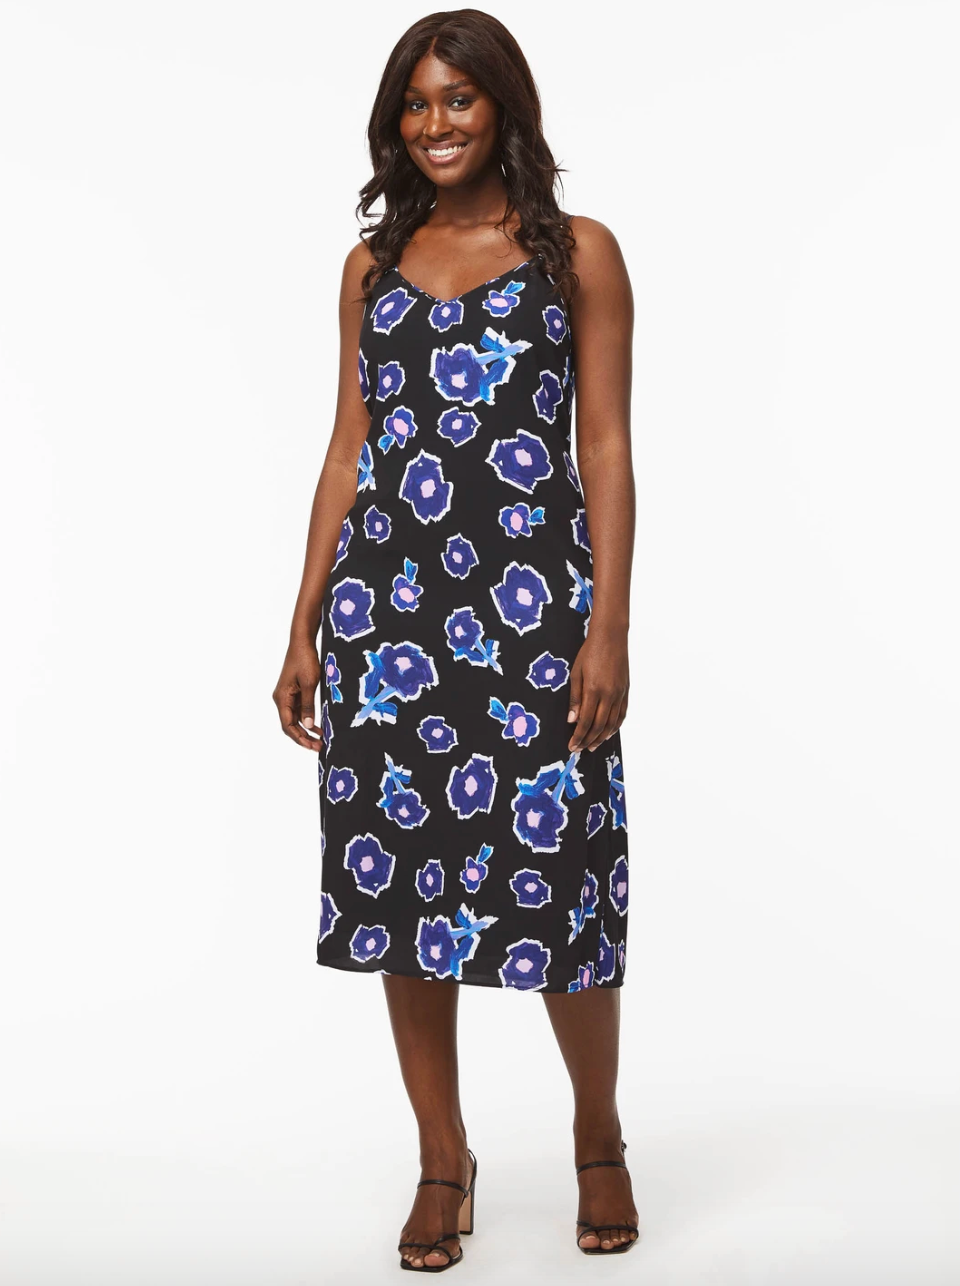 model wearing black dress with blue florals